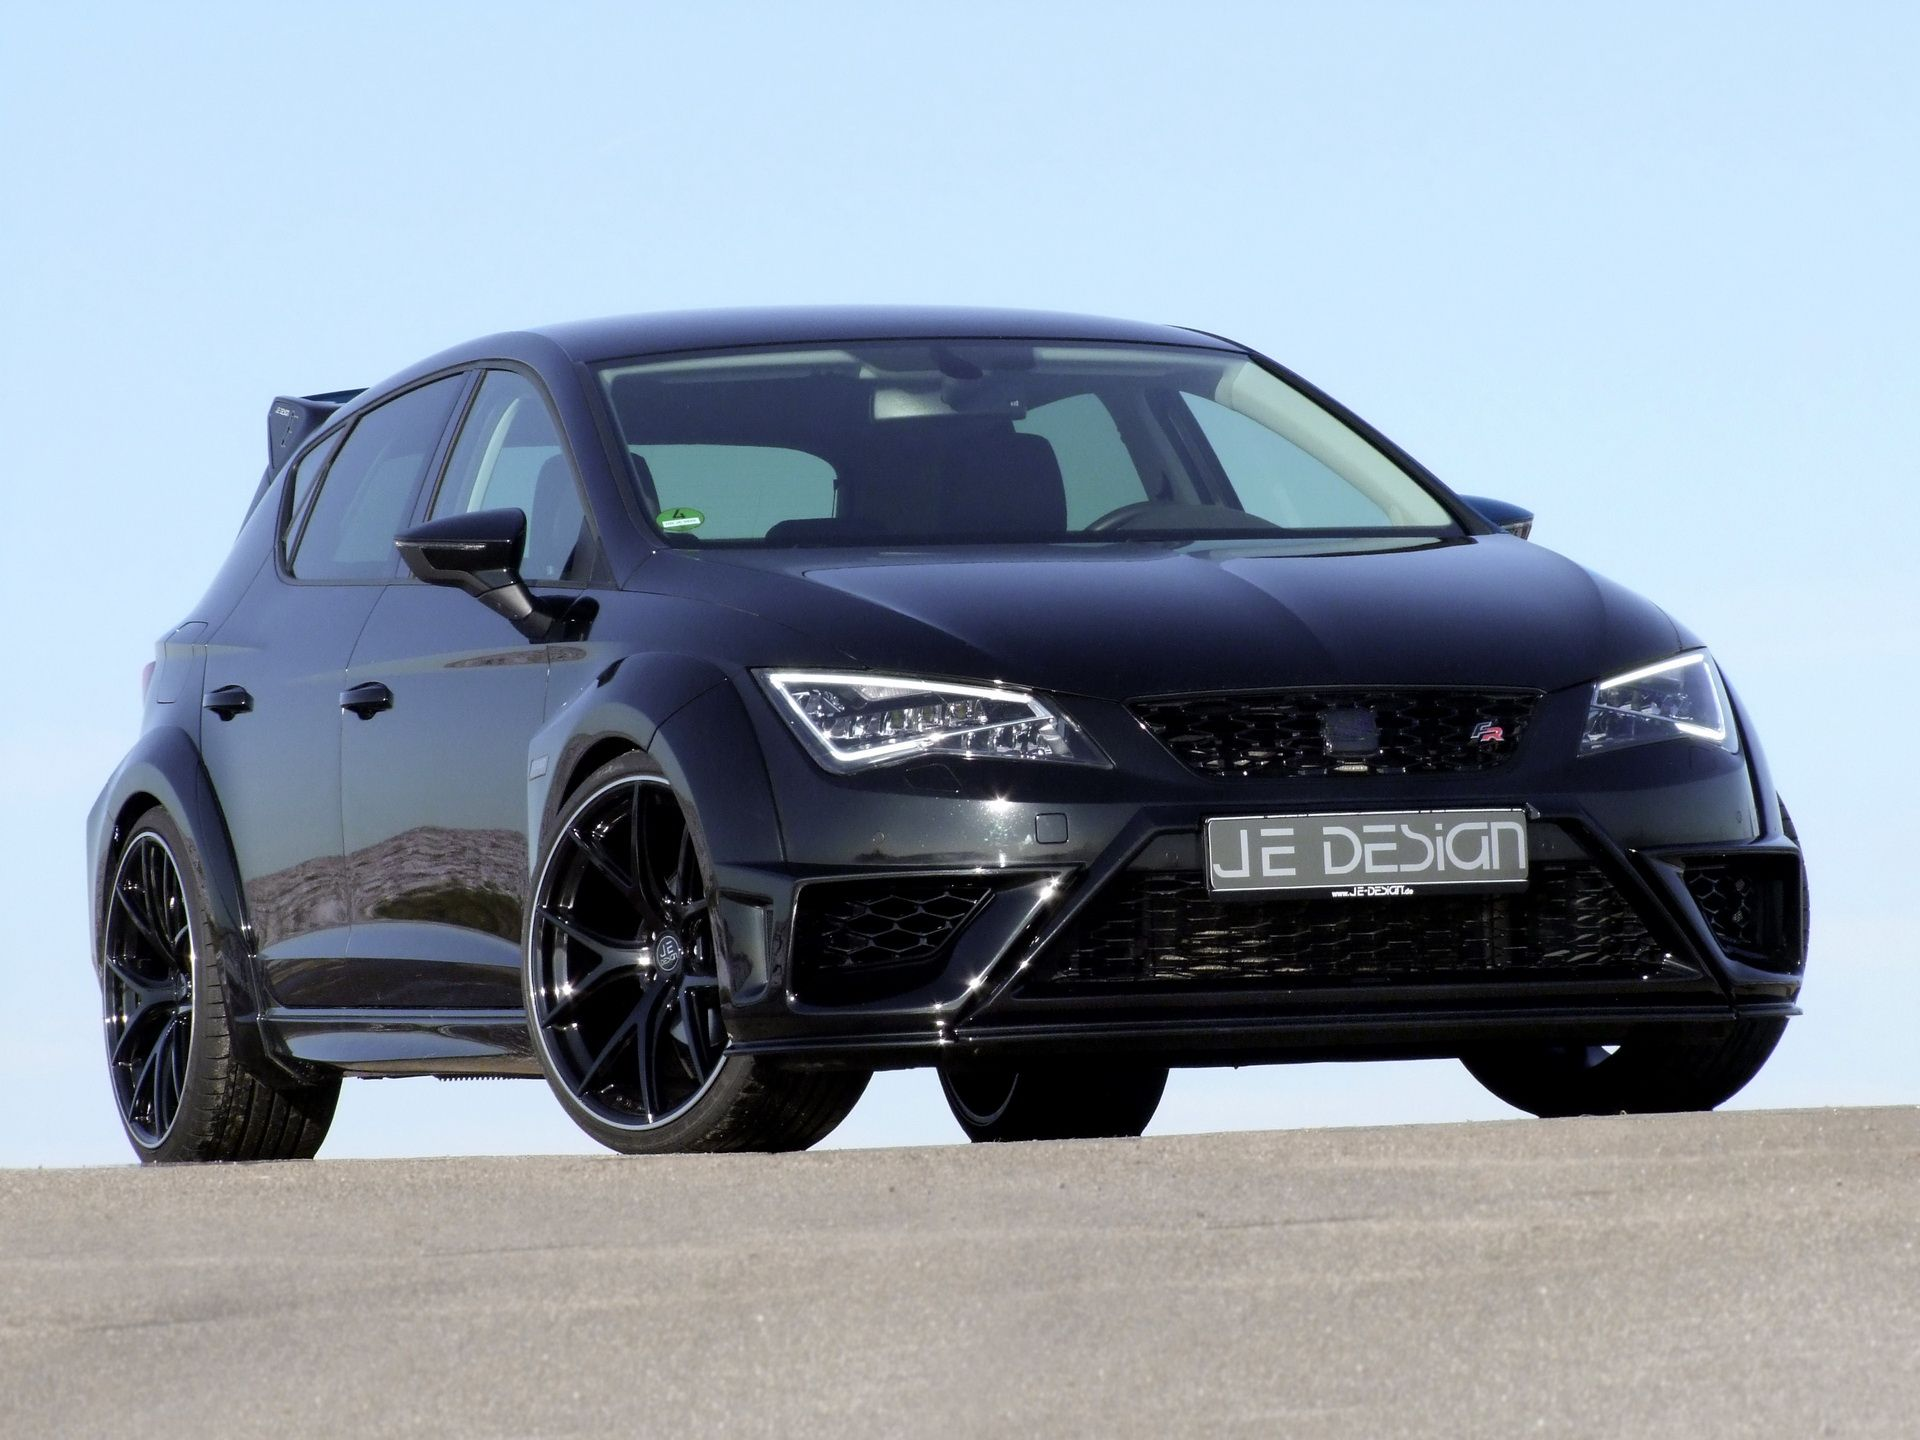 foto de JE Design makes widebody kit for the Seat Leon FR 5F JE DESIGN starts 2017 on full throttle